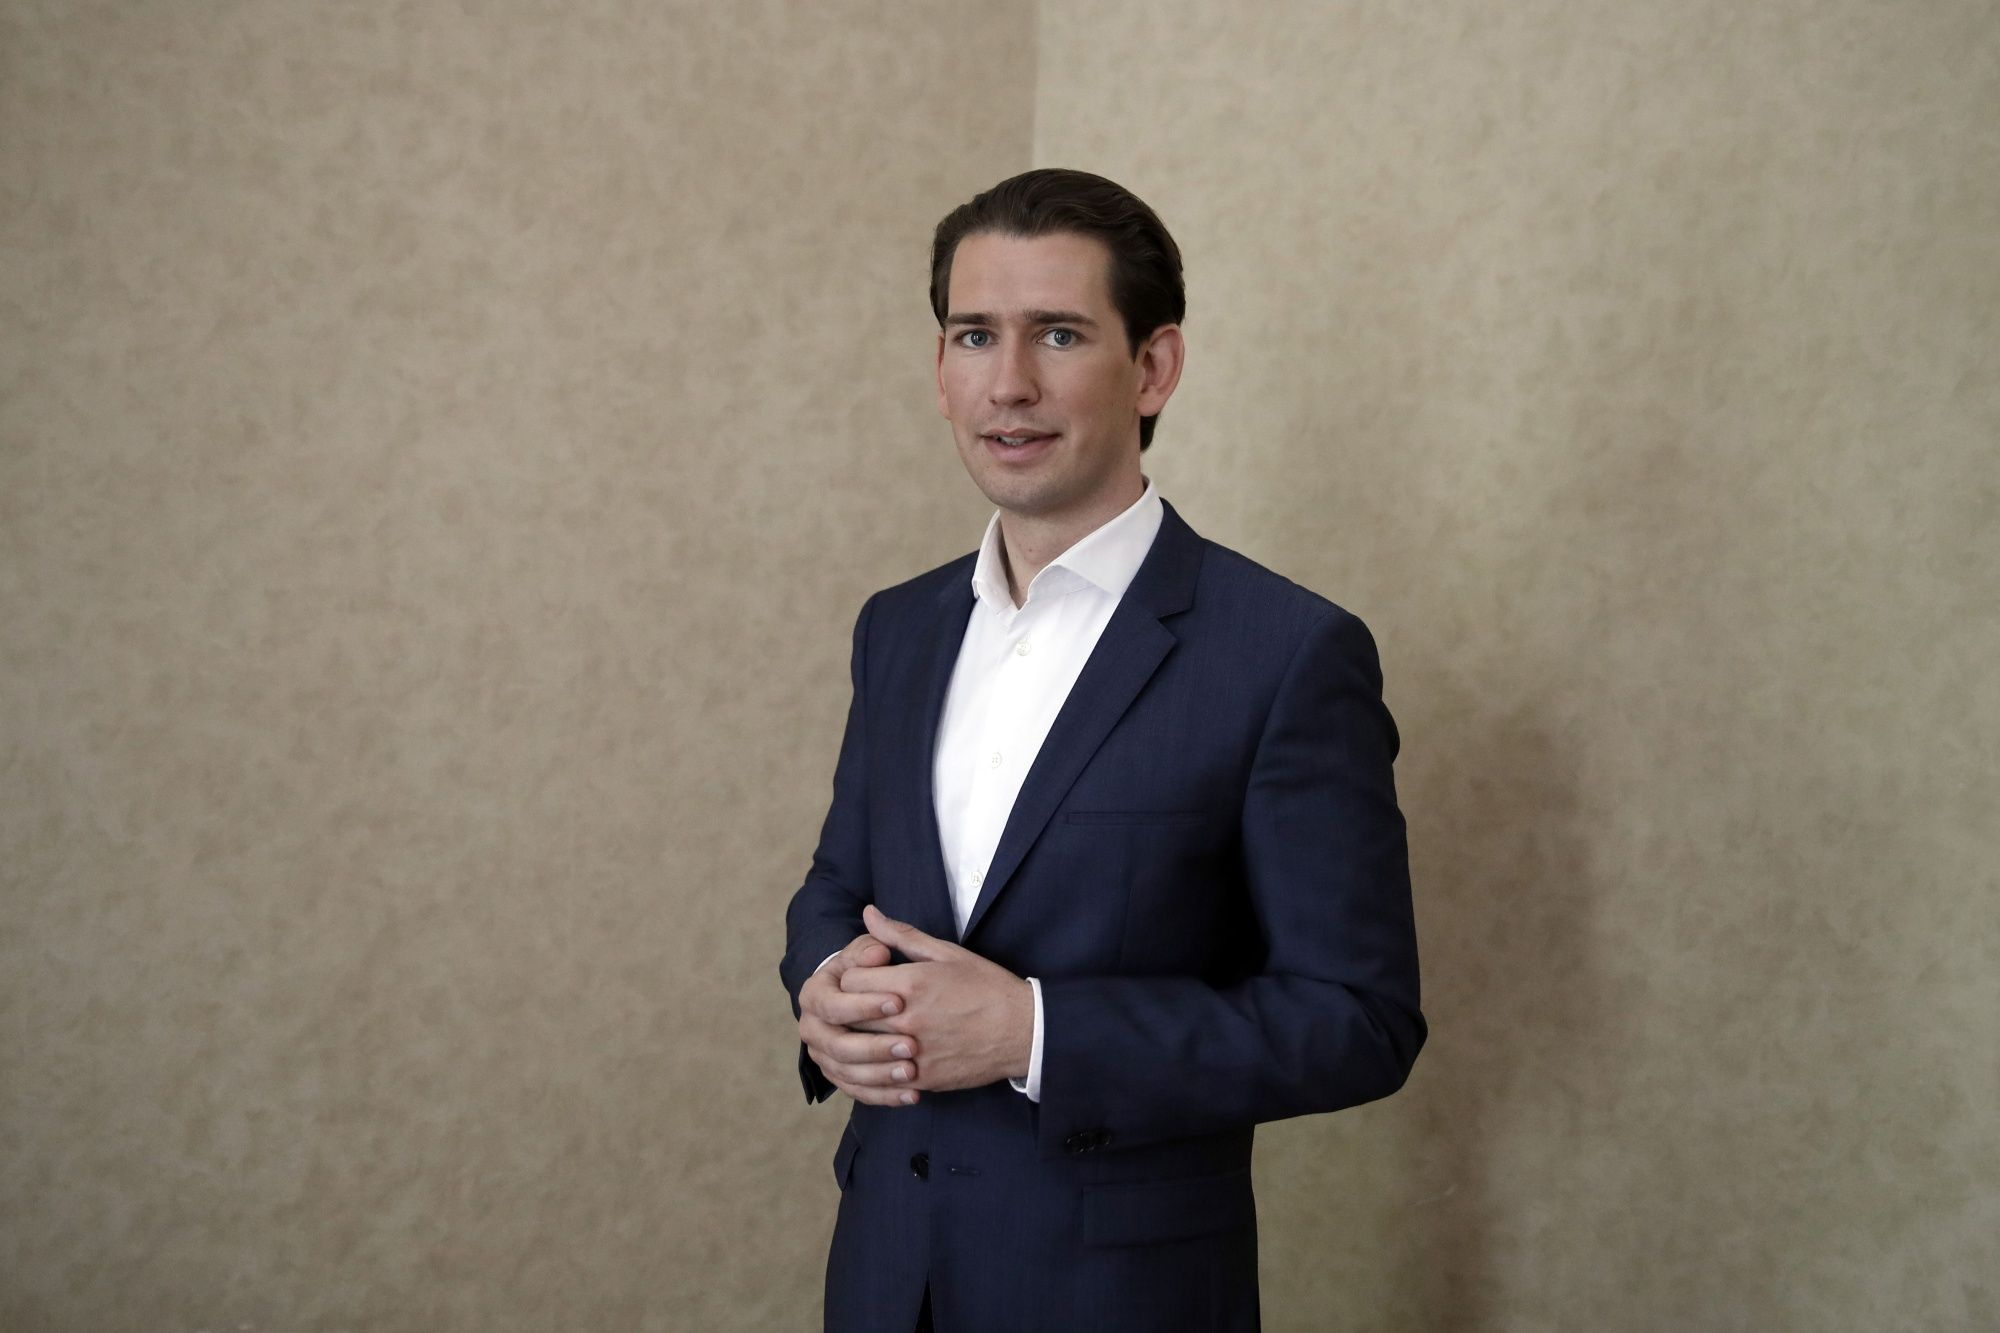 Austrian Conservatives, Greens Agree to Form Governing Coalition